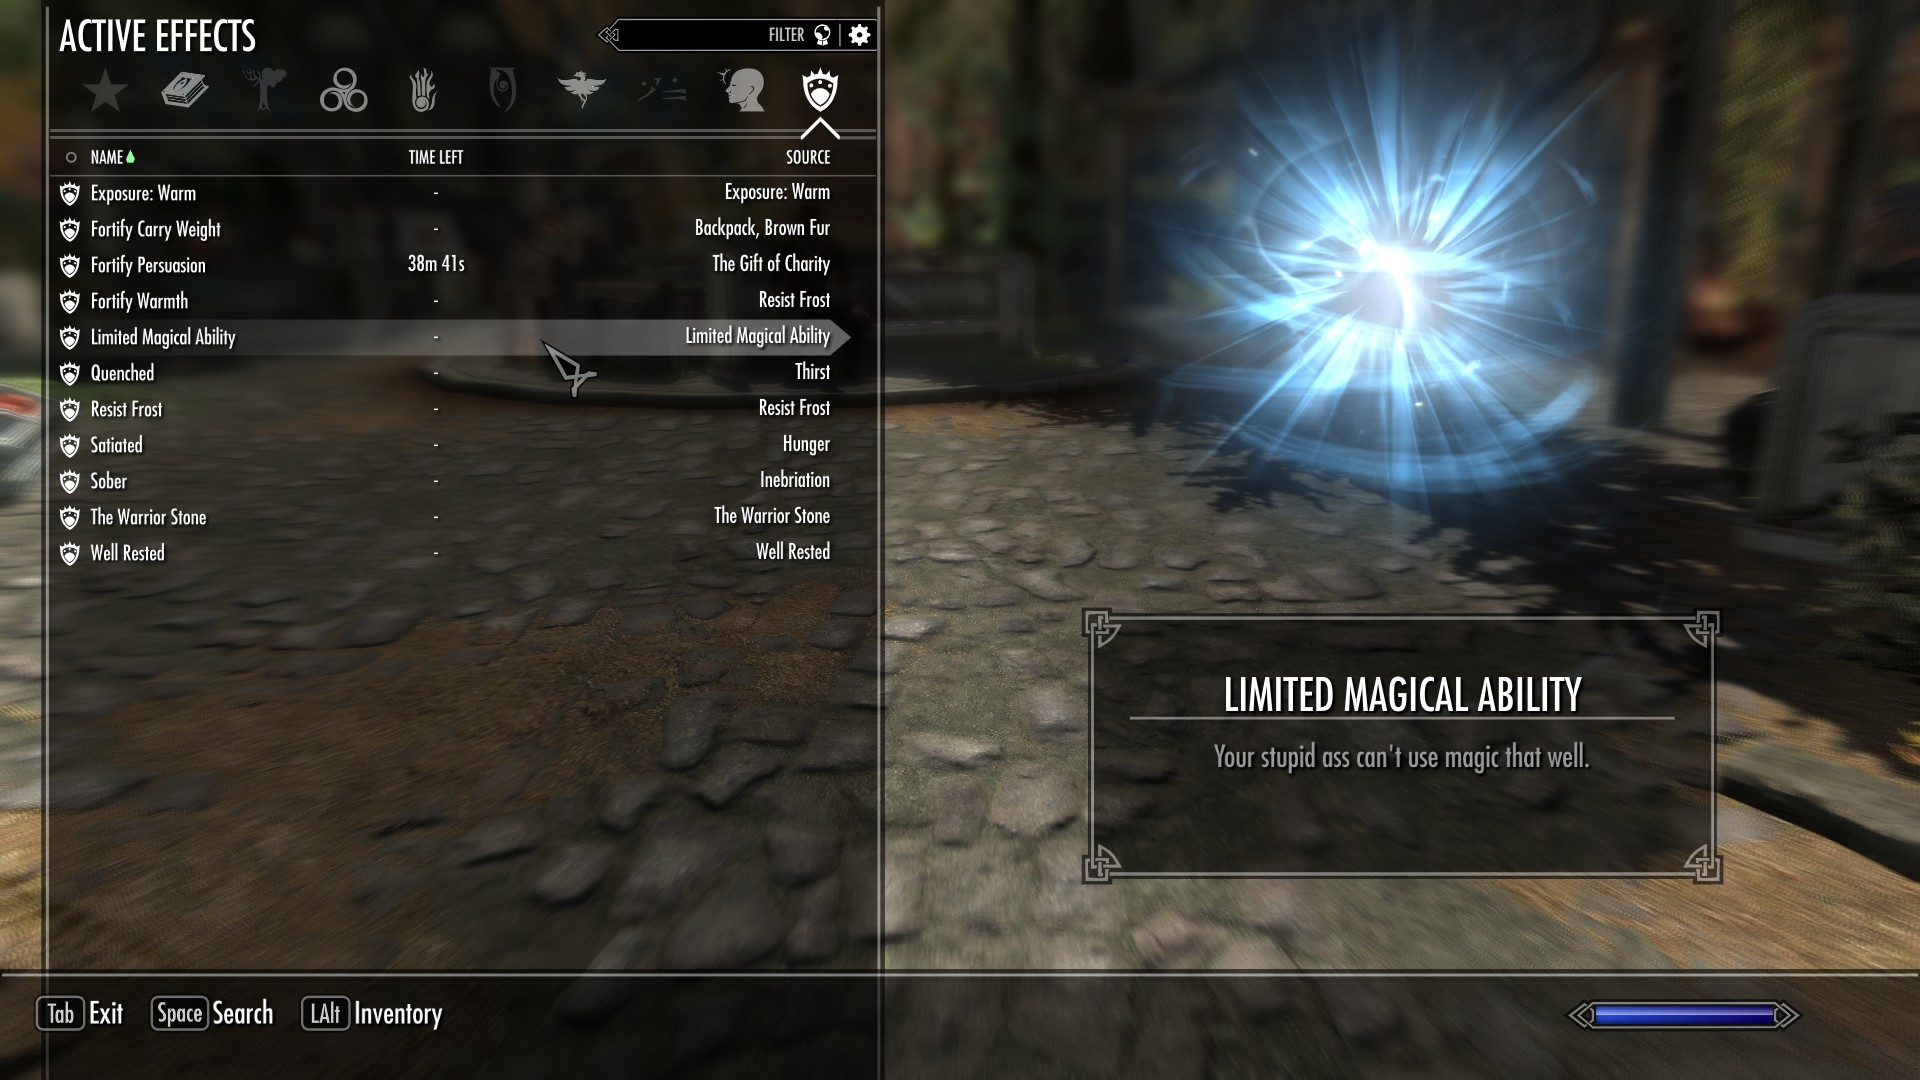 Roadhouse699's Witcher-style Gameplay Modification at Skyrim ...